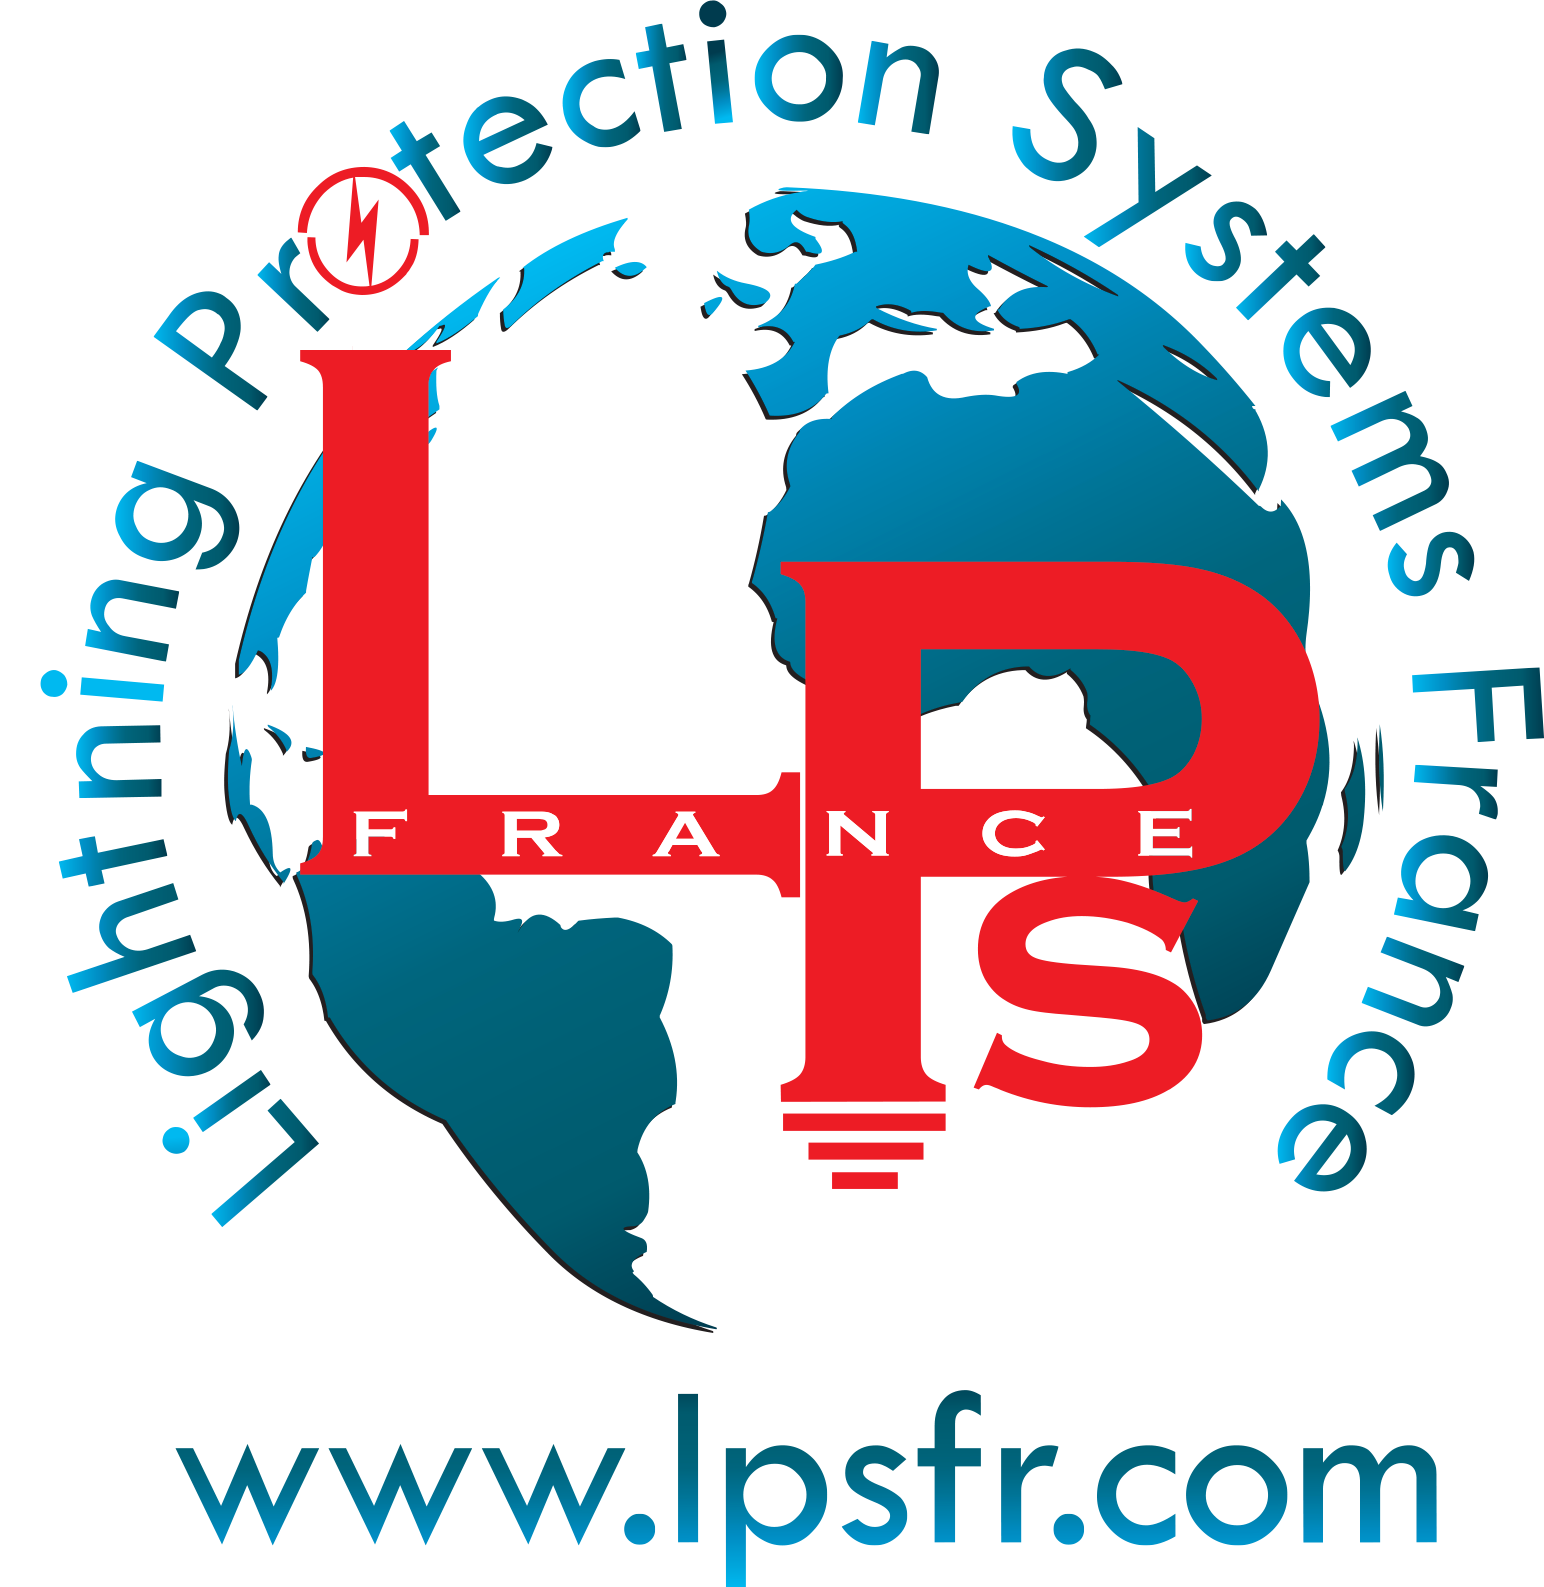 Lightning protection system france logo